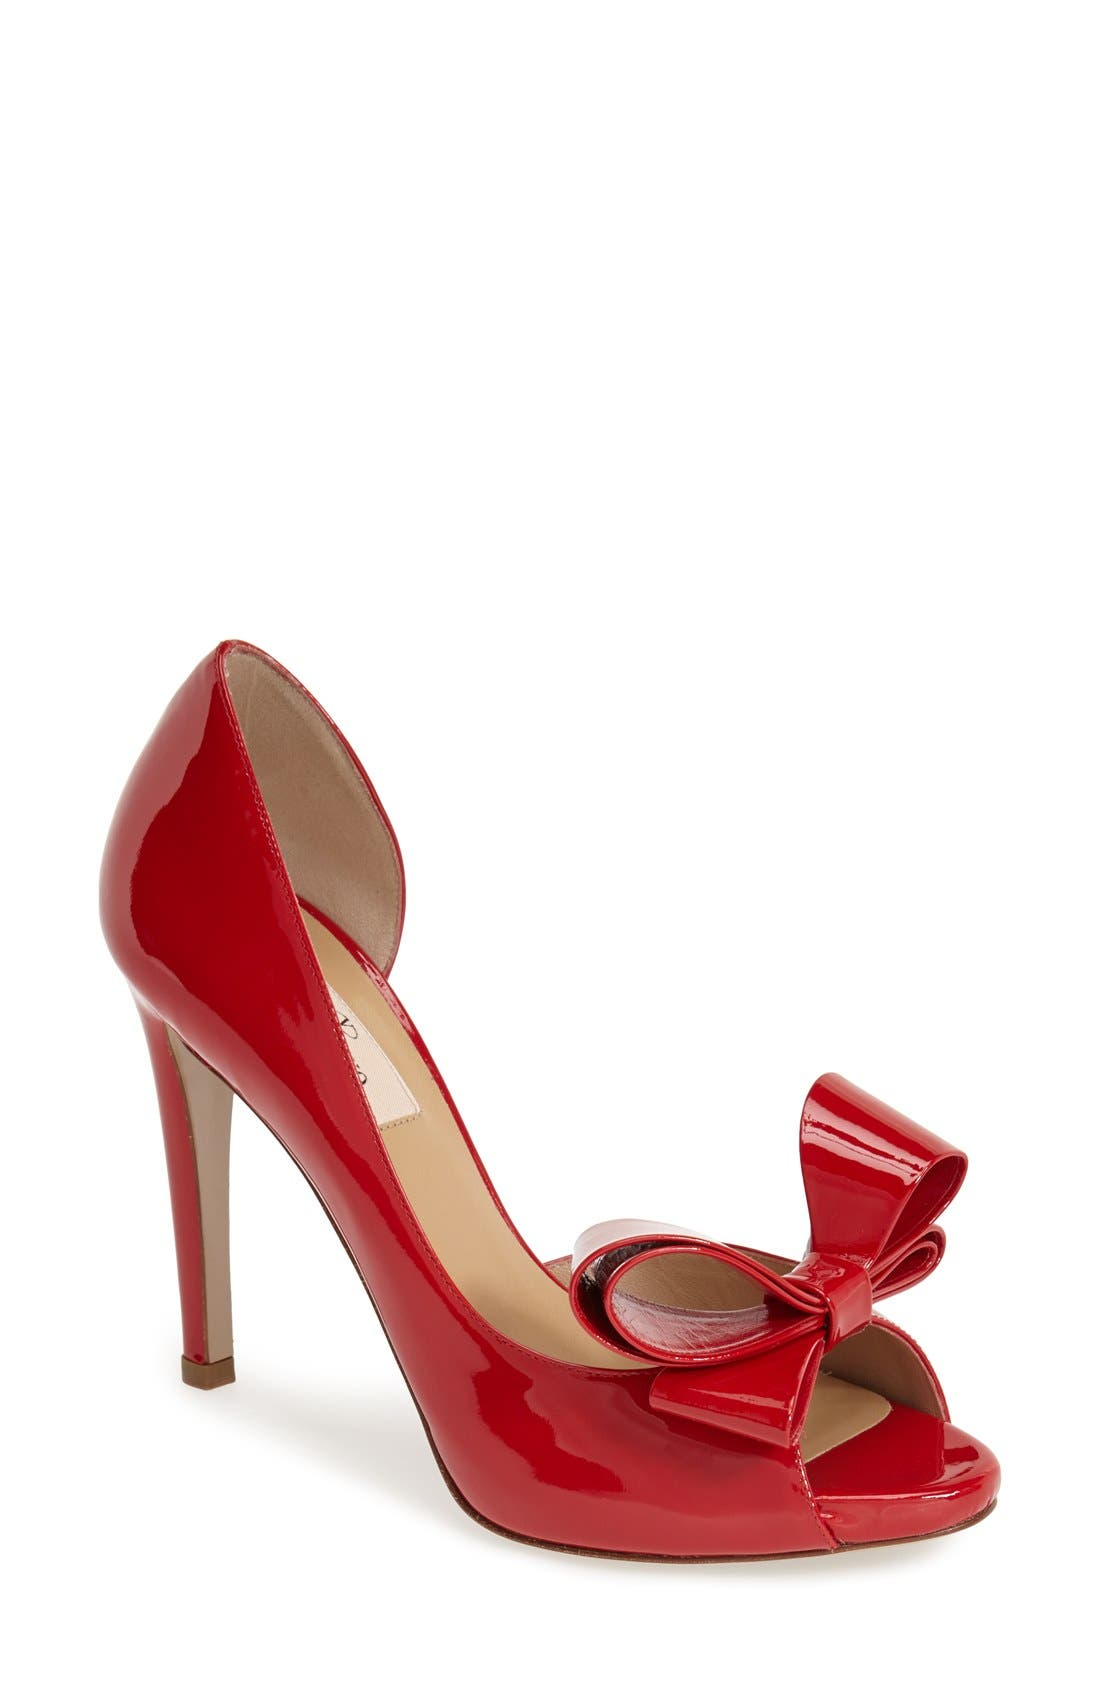 Main Image - Valentino Couture Bow d'Orsay Pump (Women)